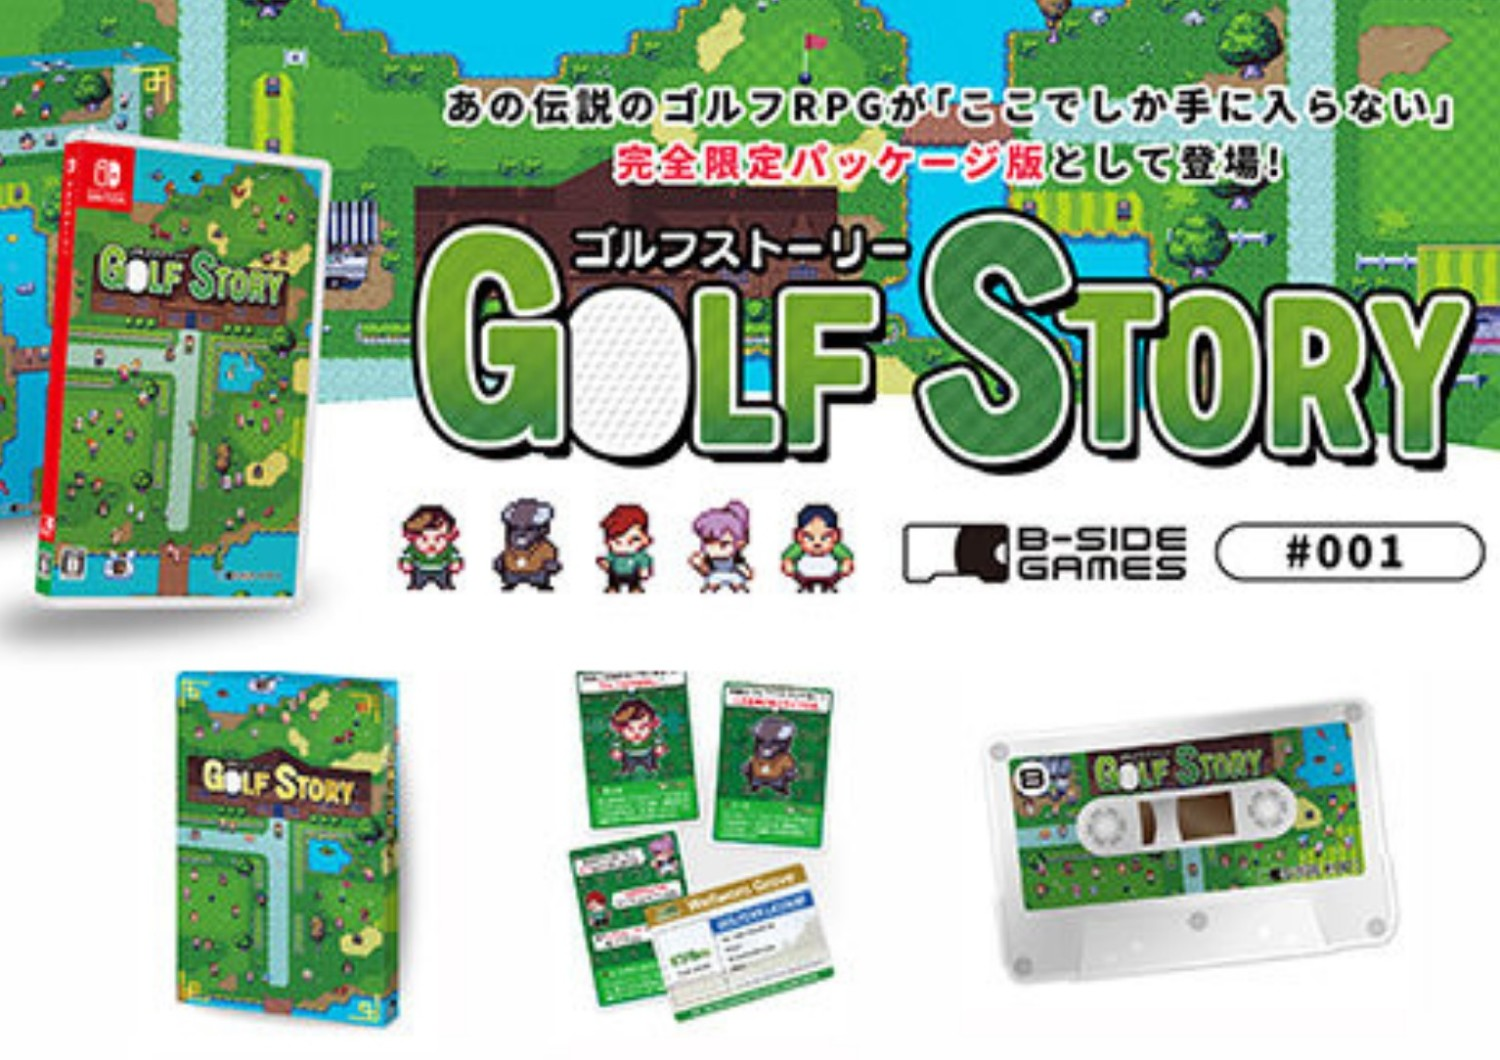 Golf Story Switch Physical Edition Announced In Japan